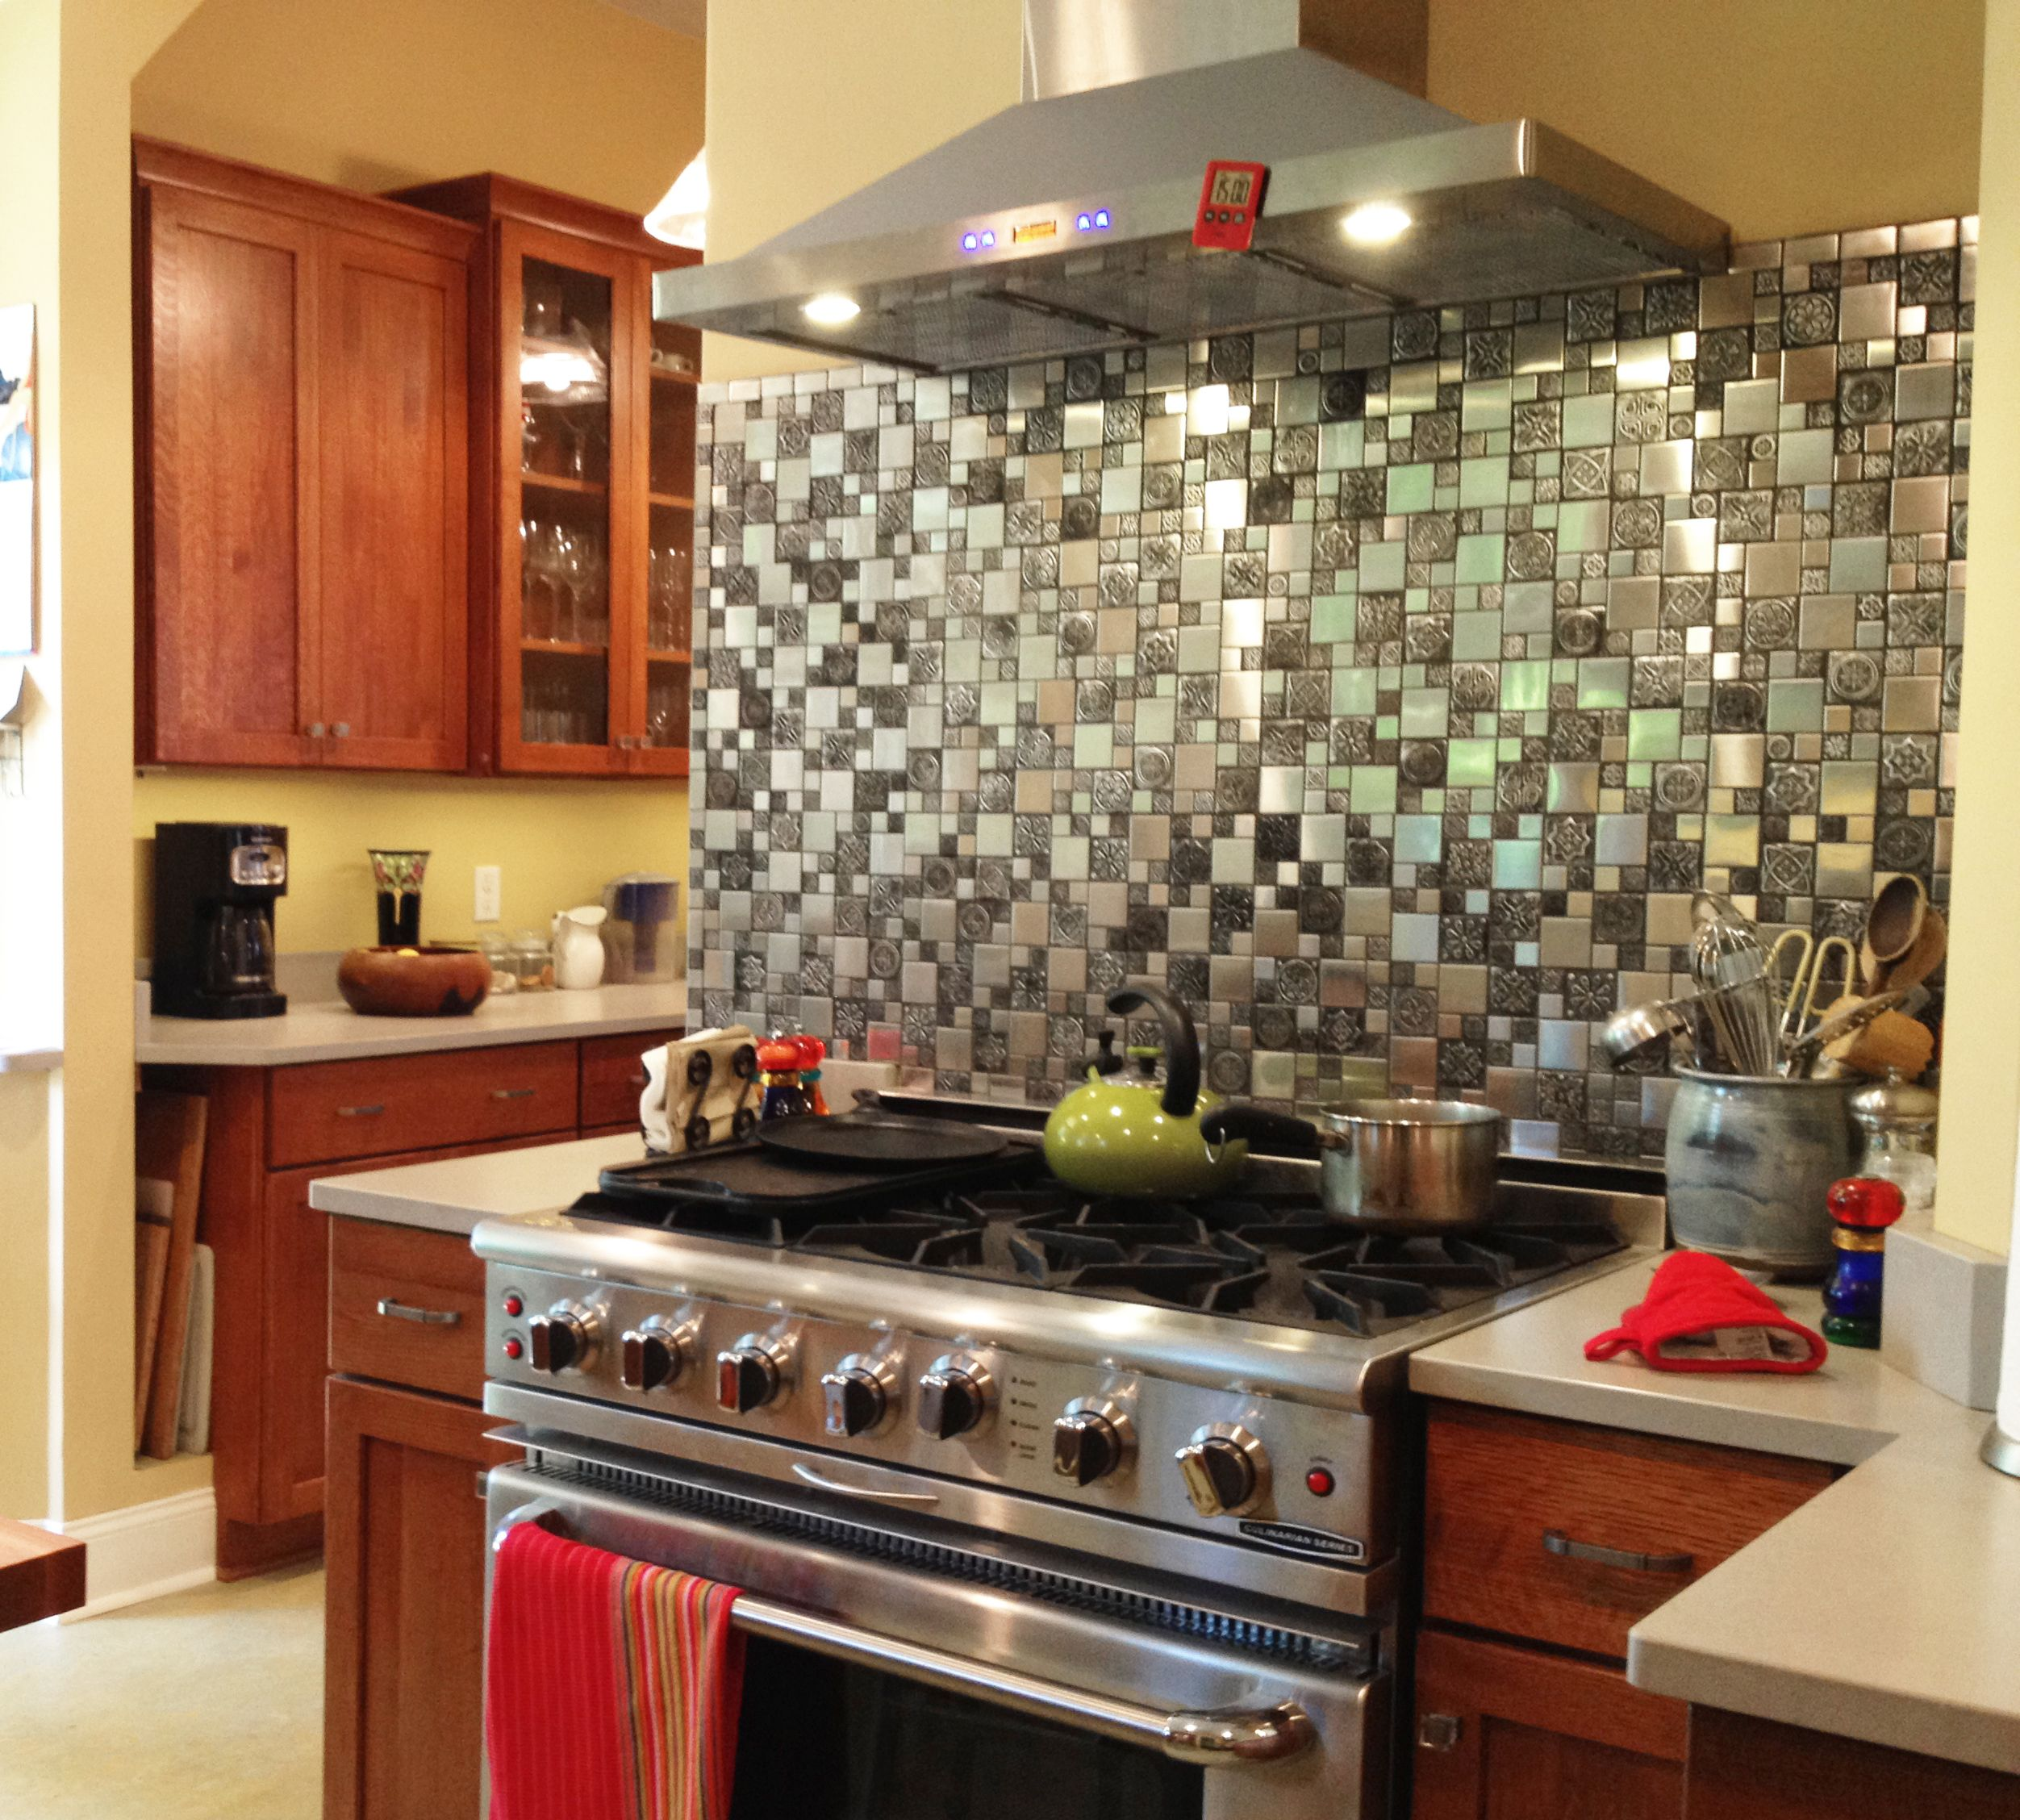 Roman Pattern Stainless Steel And Pewter Accents Tile - EMT_262-MIX-SM